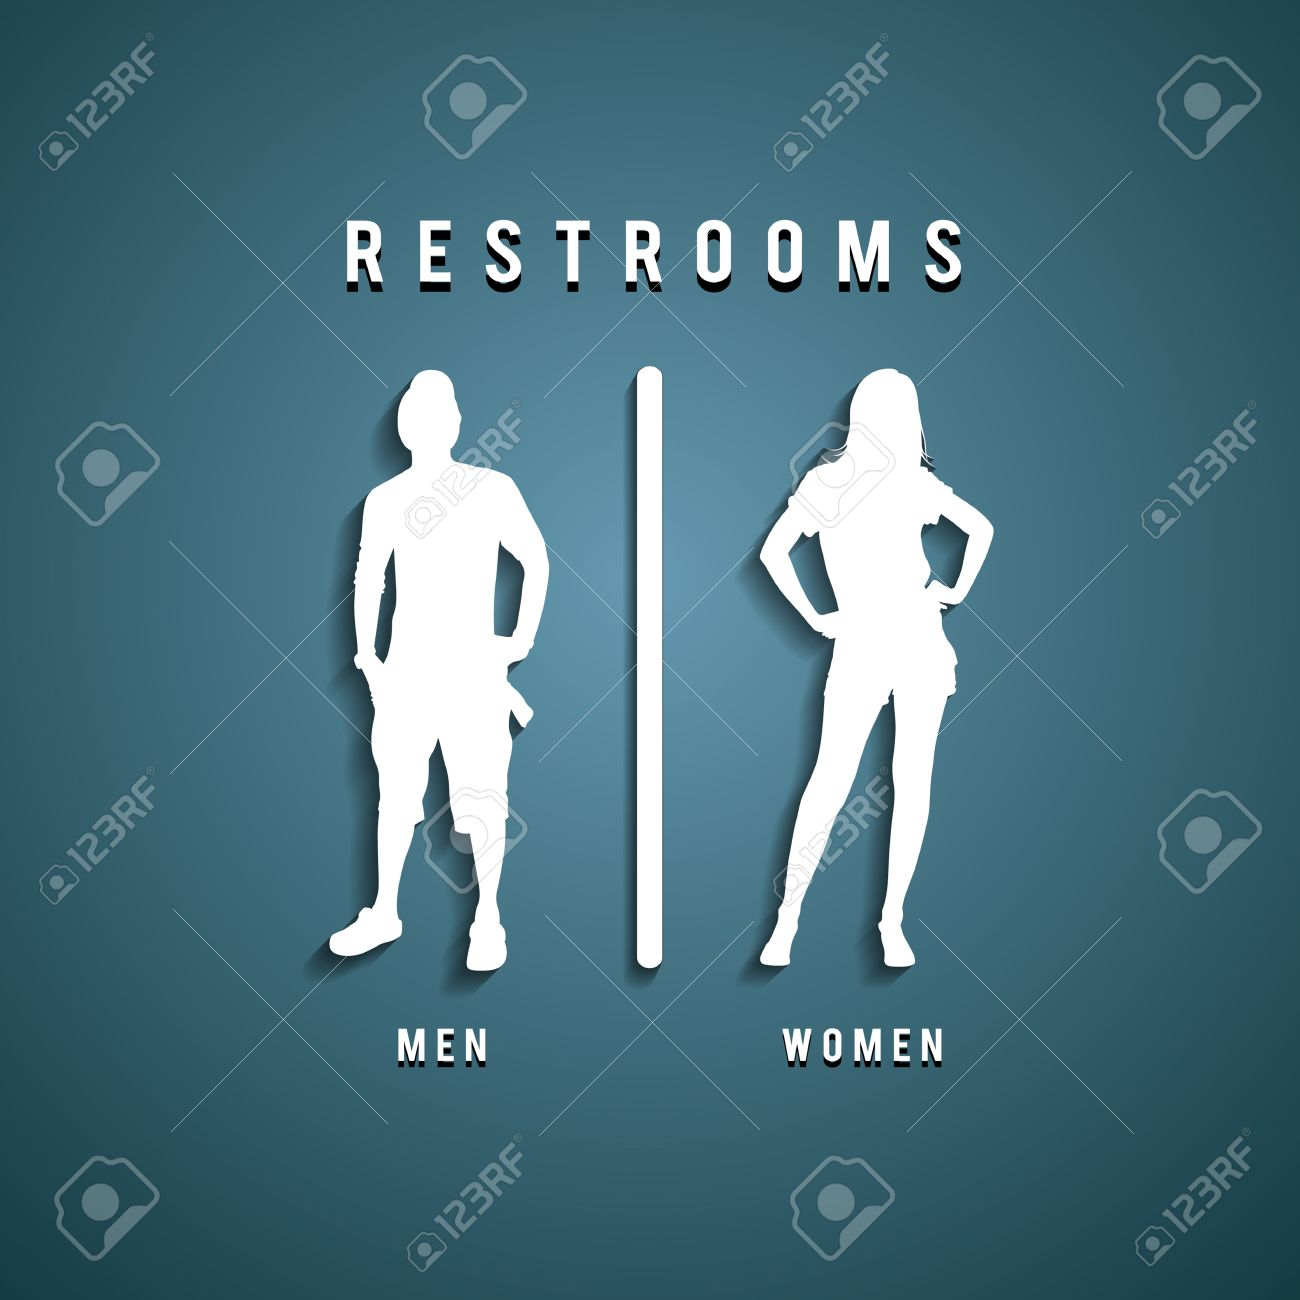 Restroom Signs illustration Stock Vector   20682829. Restroom Signs Illustration Royalty Free Cliparts  Vectors  And